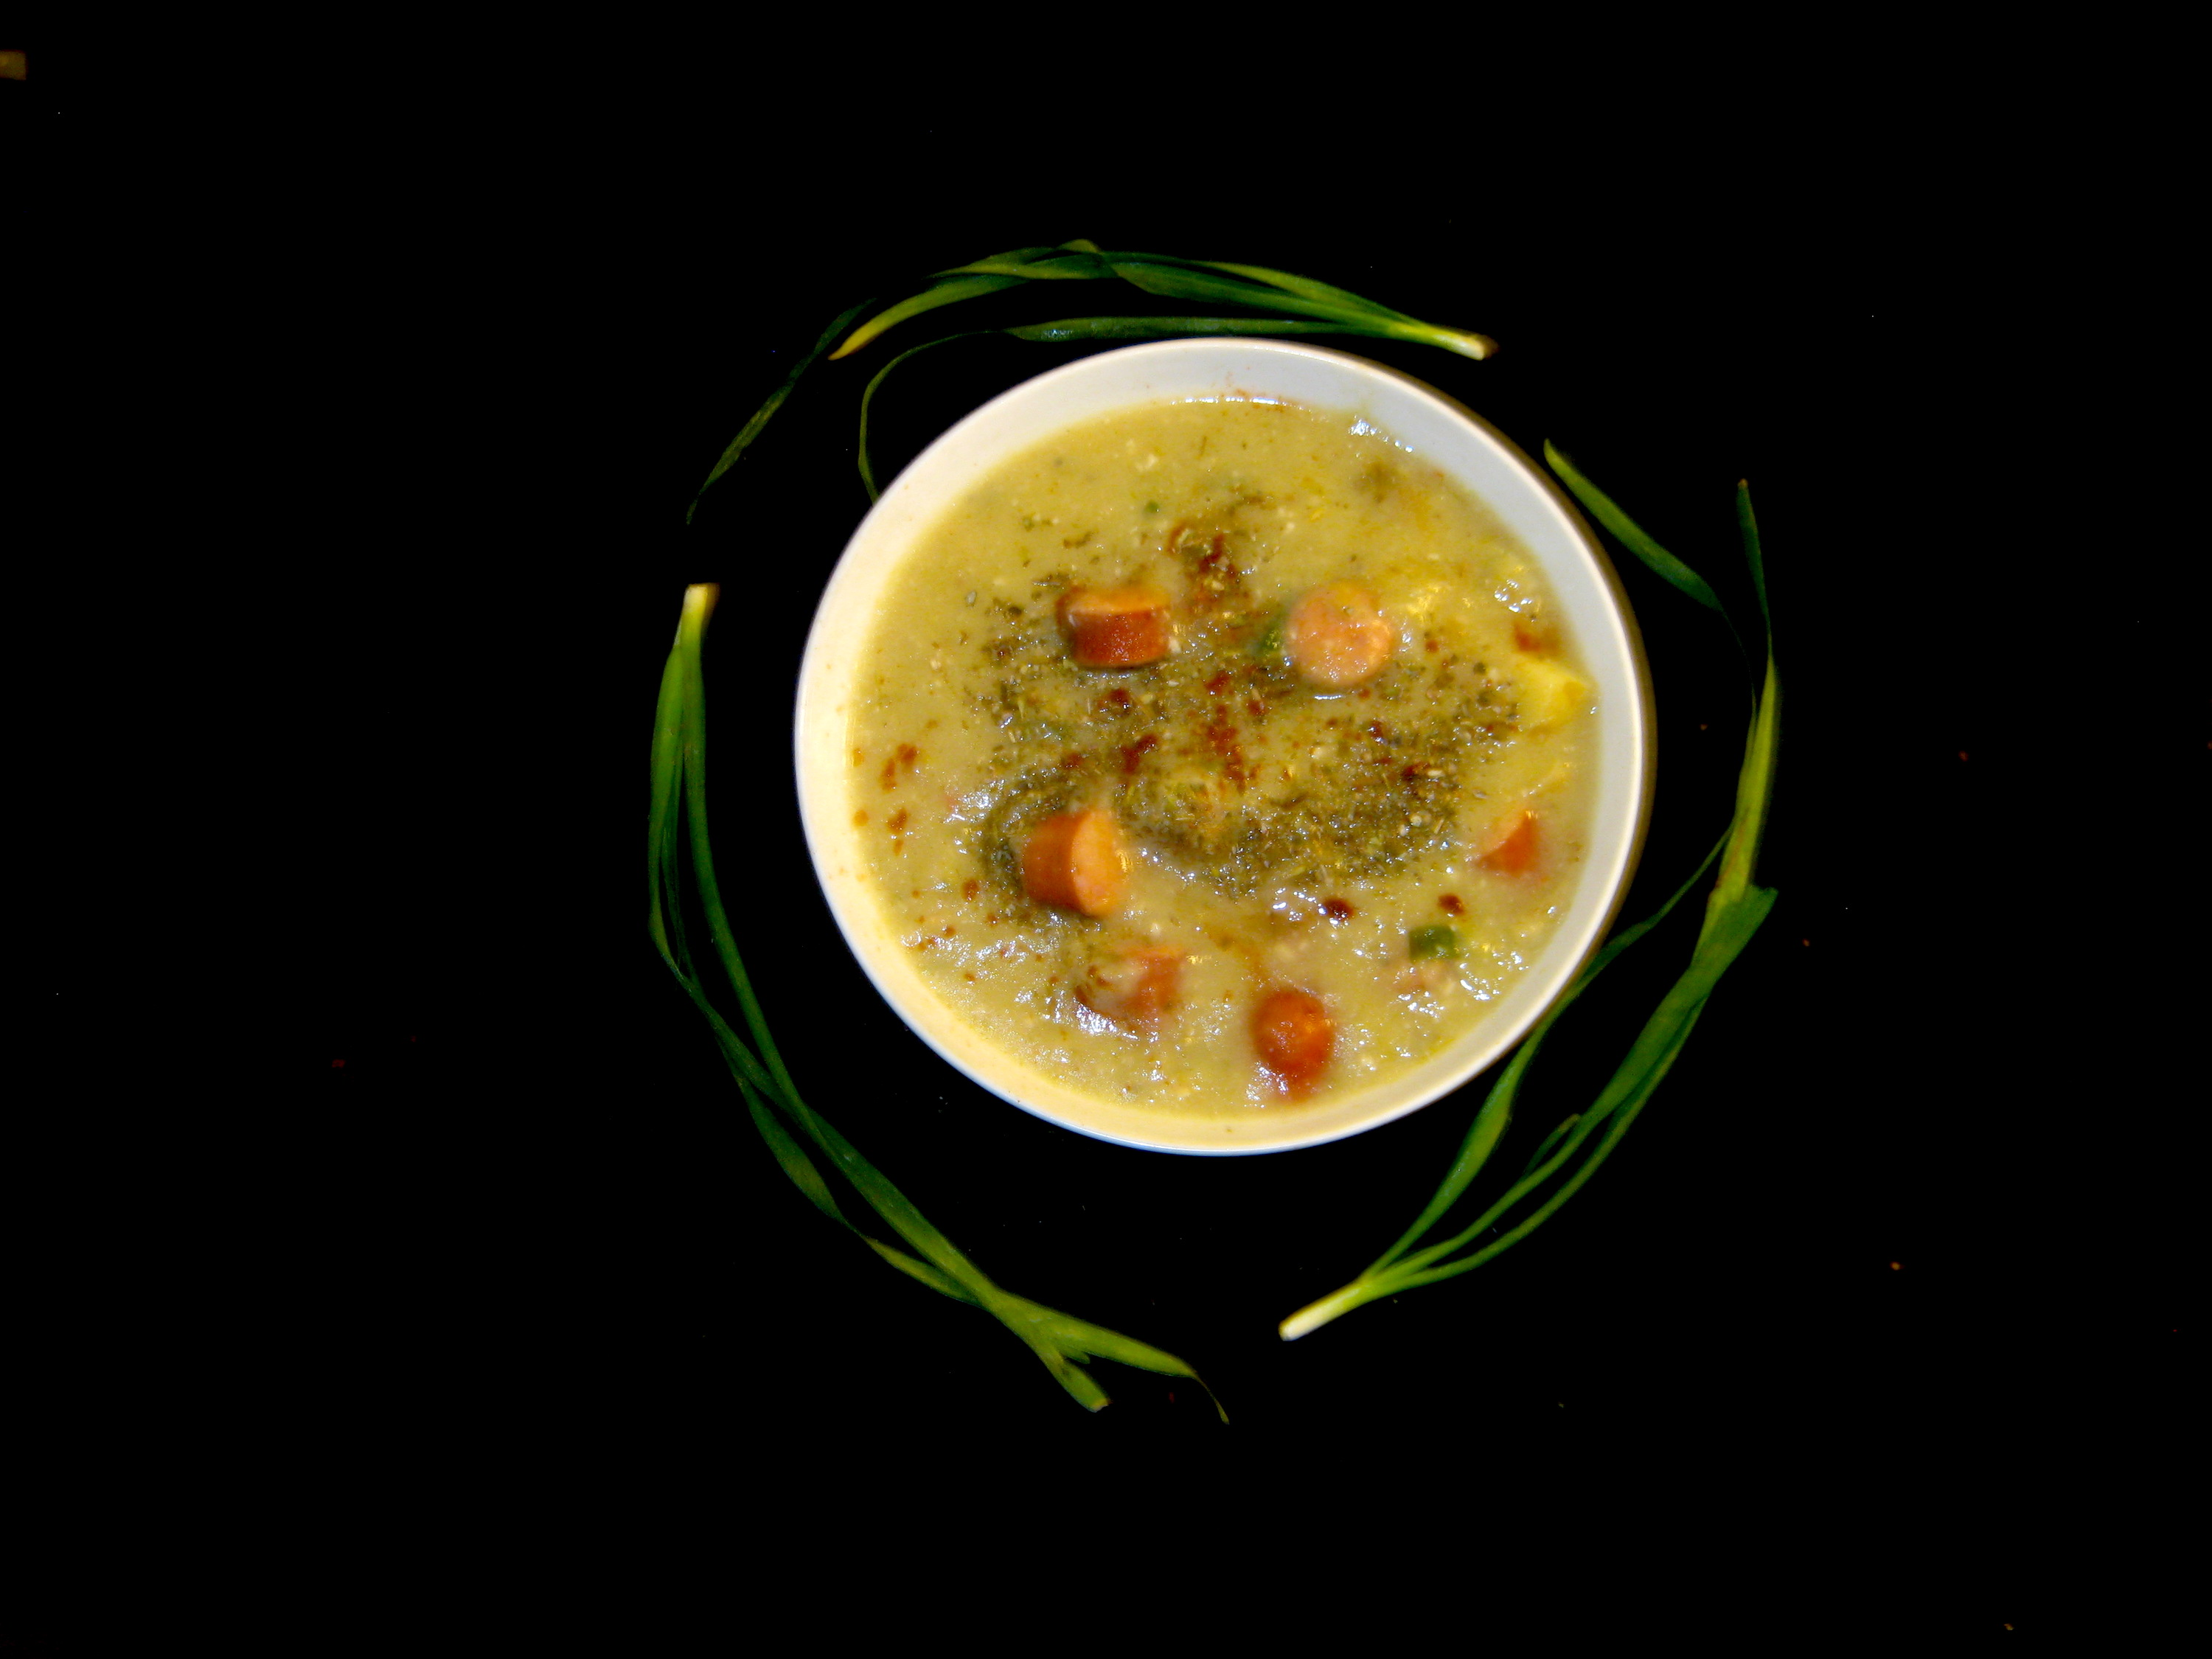 Potato Leek Soup with Debrecziner and Garlic Chives